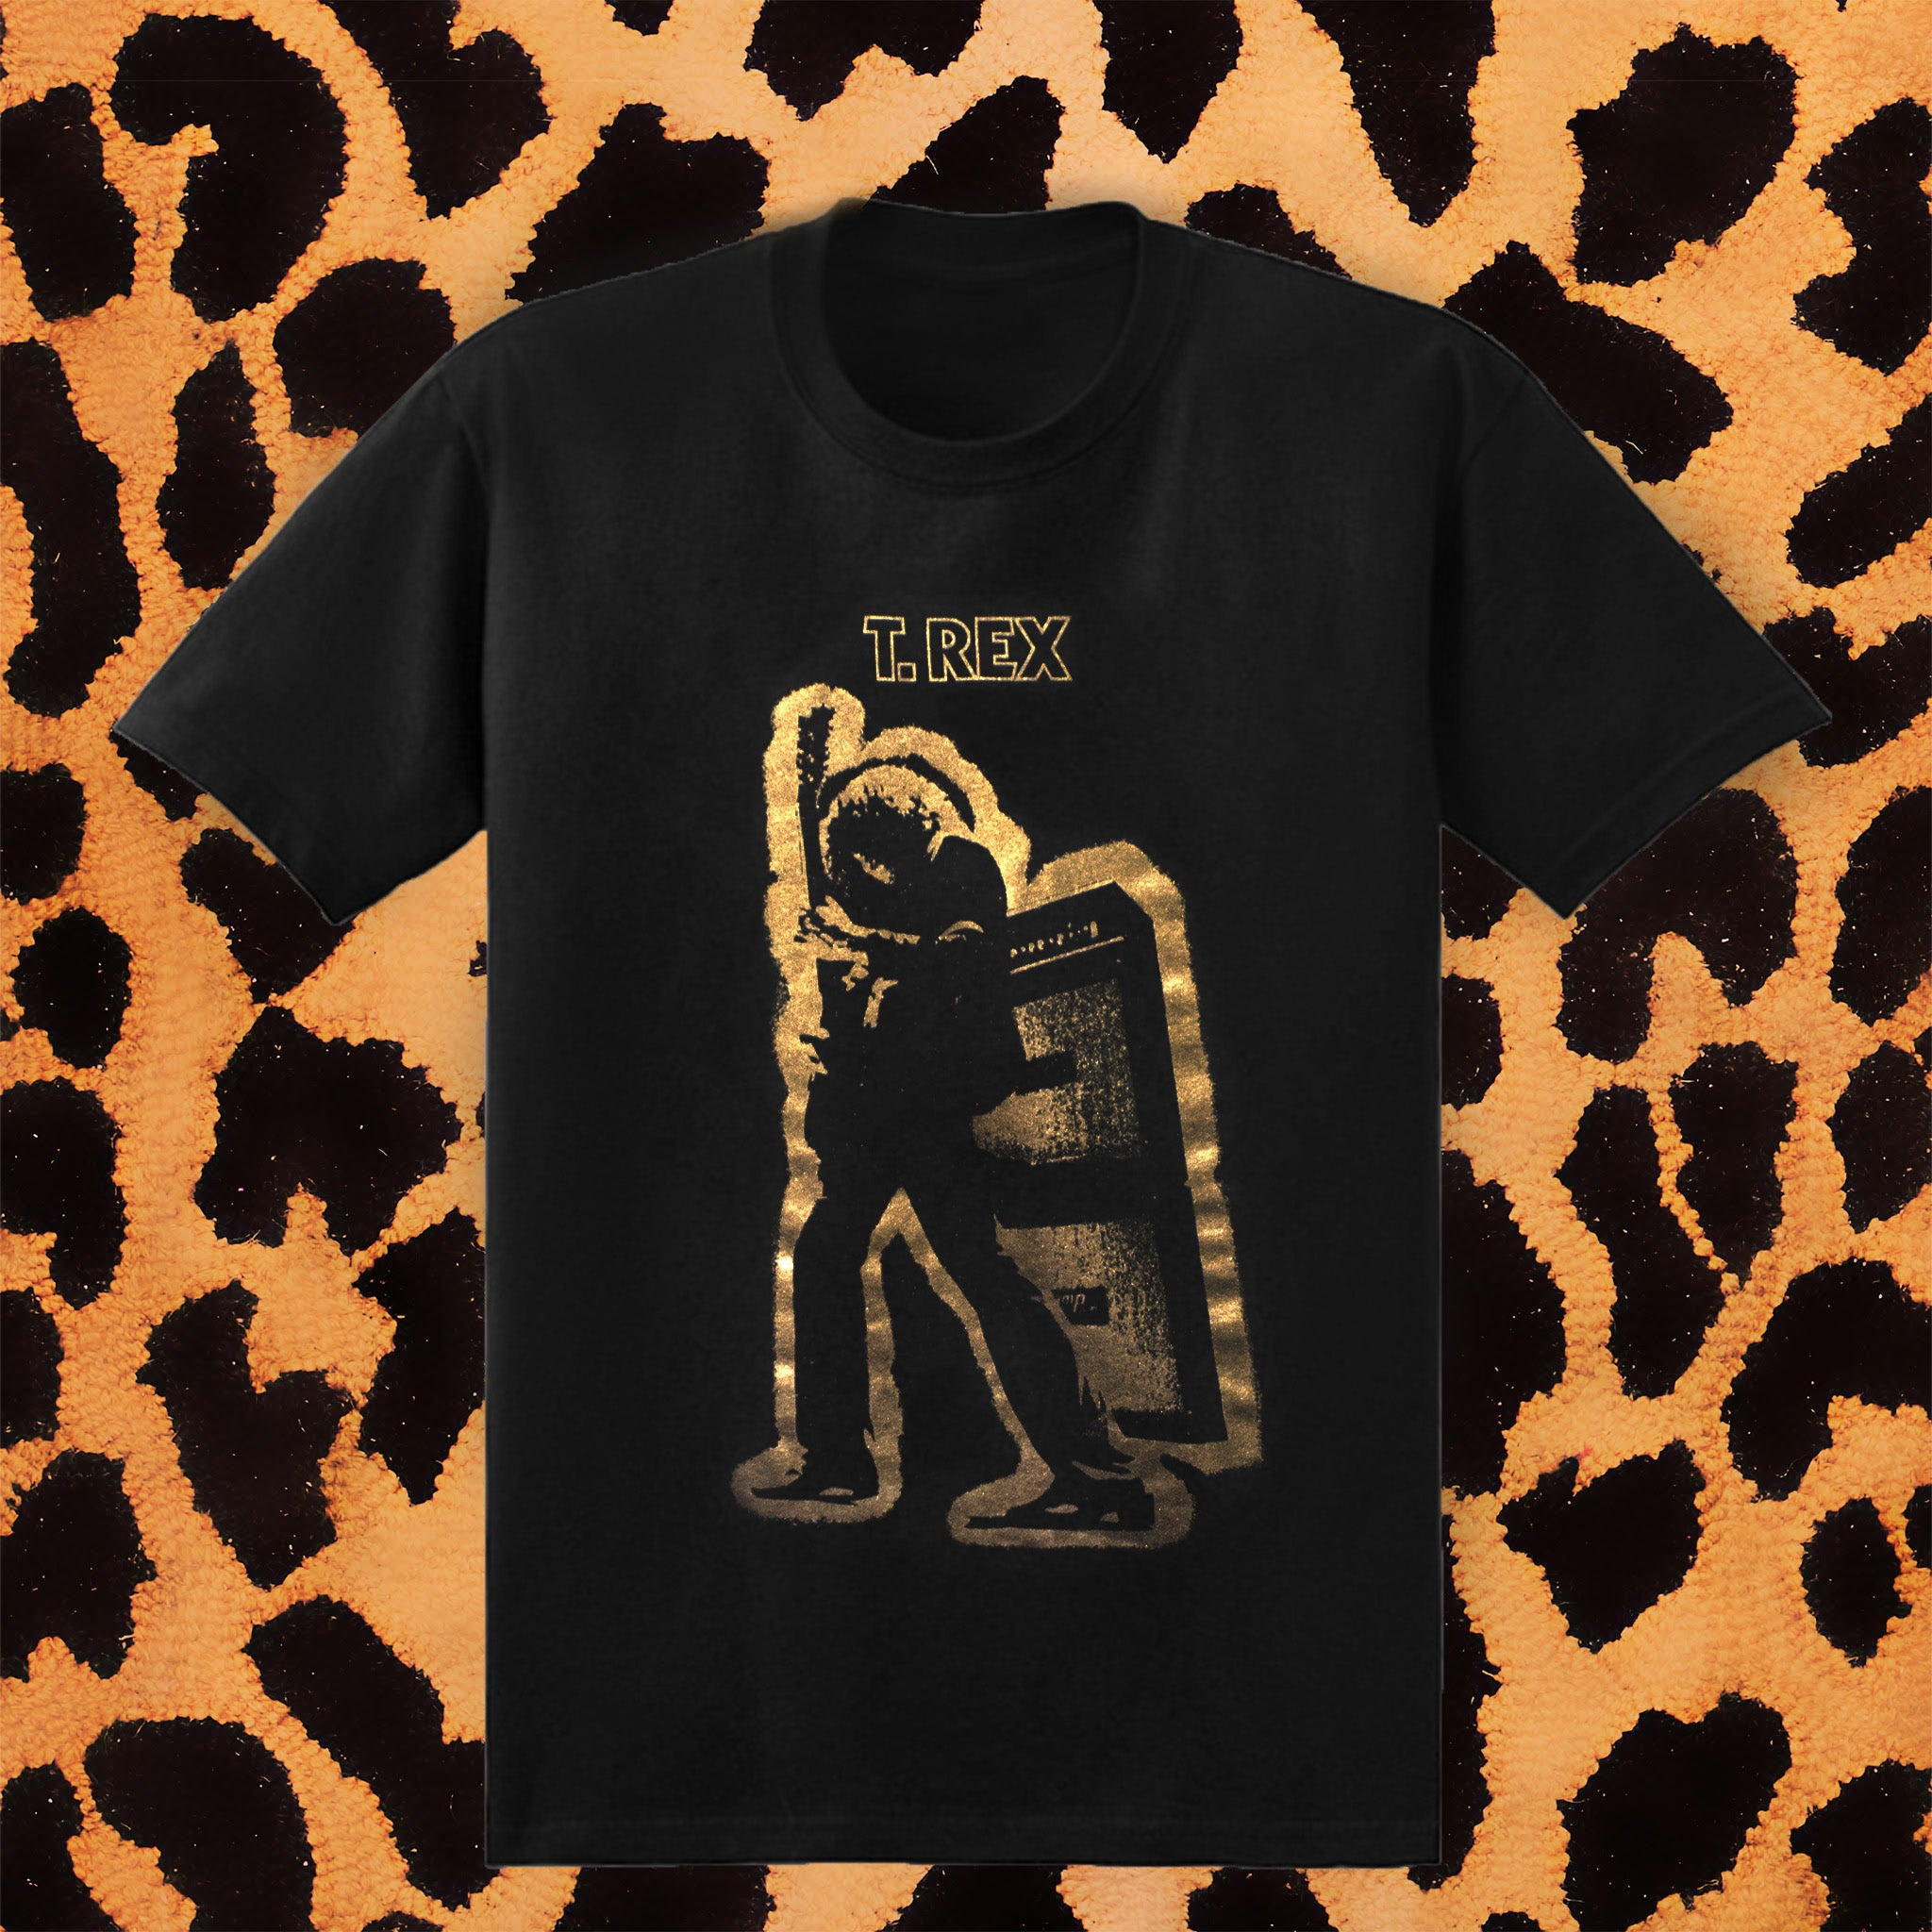 "T.REX ""ELECTRIC WARRIOR"" T-SHIRT (UNISEX)"